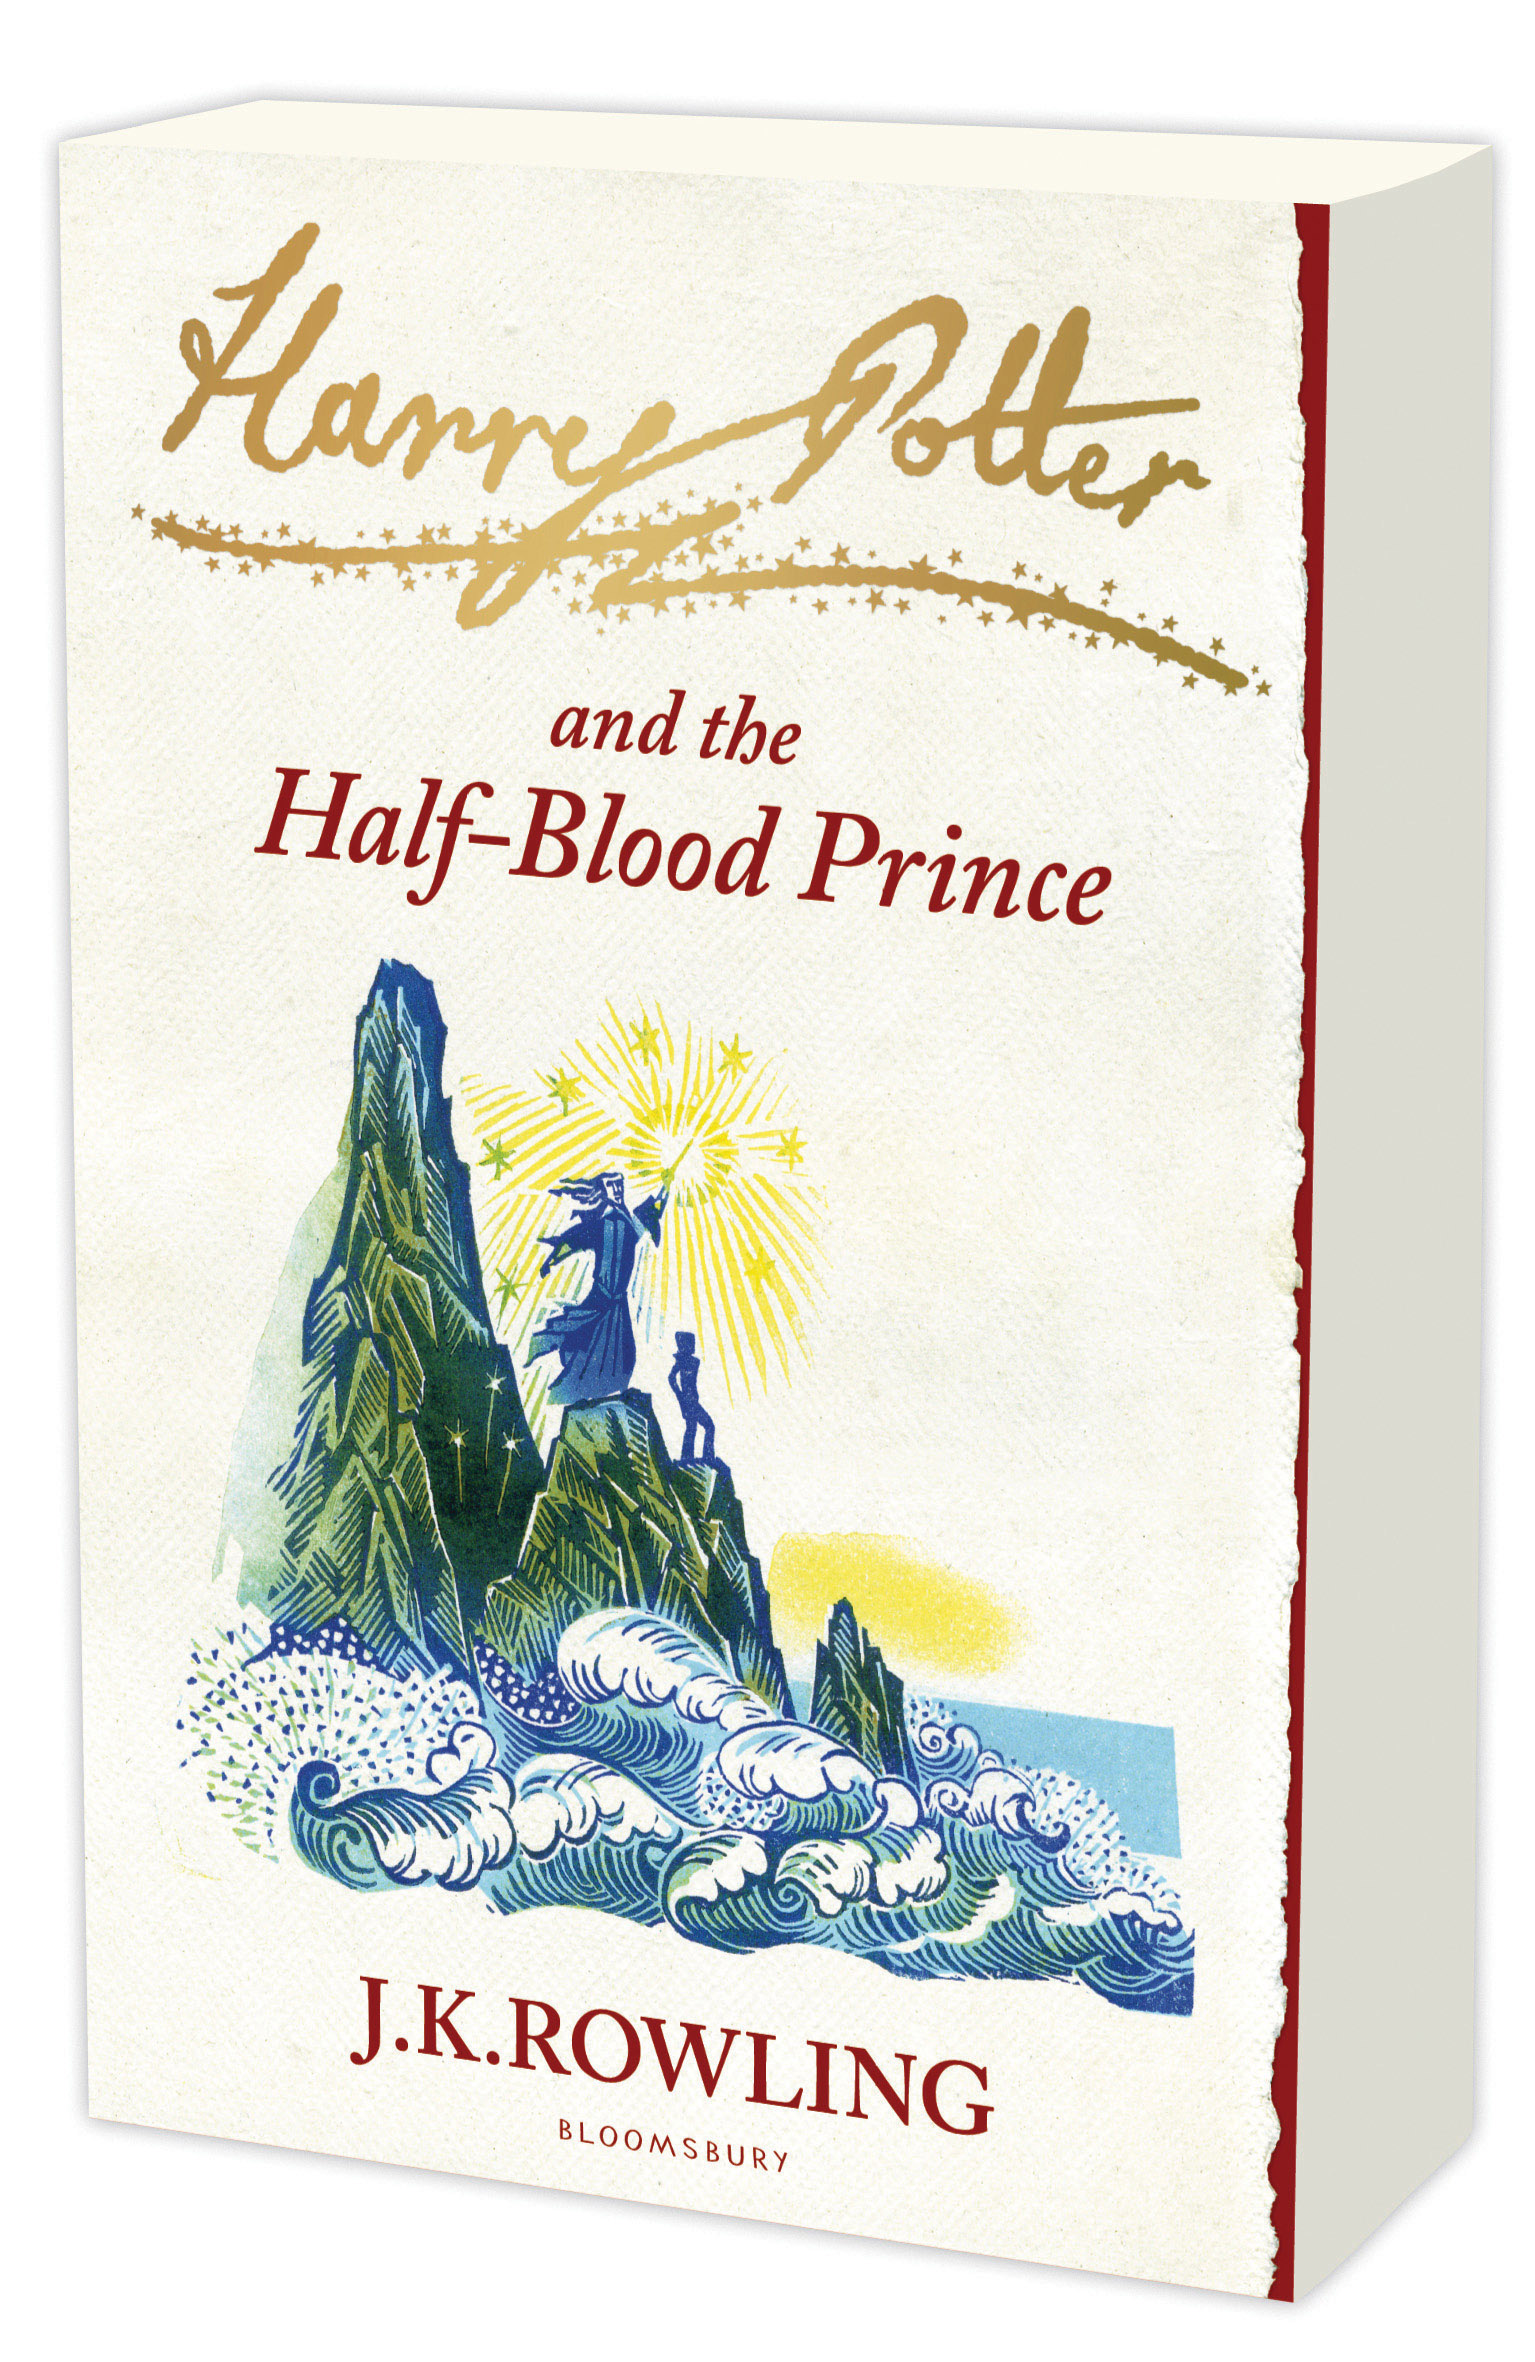 Harry Potter and the Half-Blood Prince signature edition